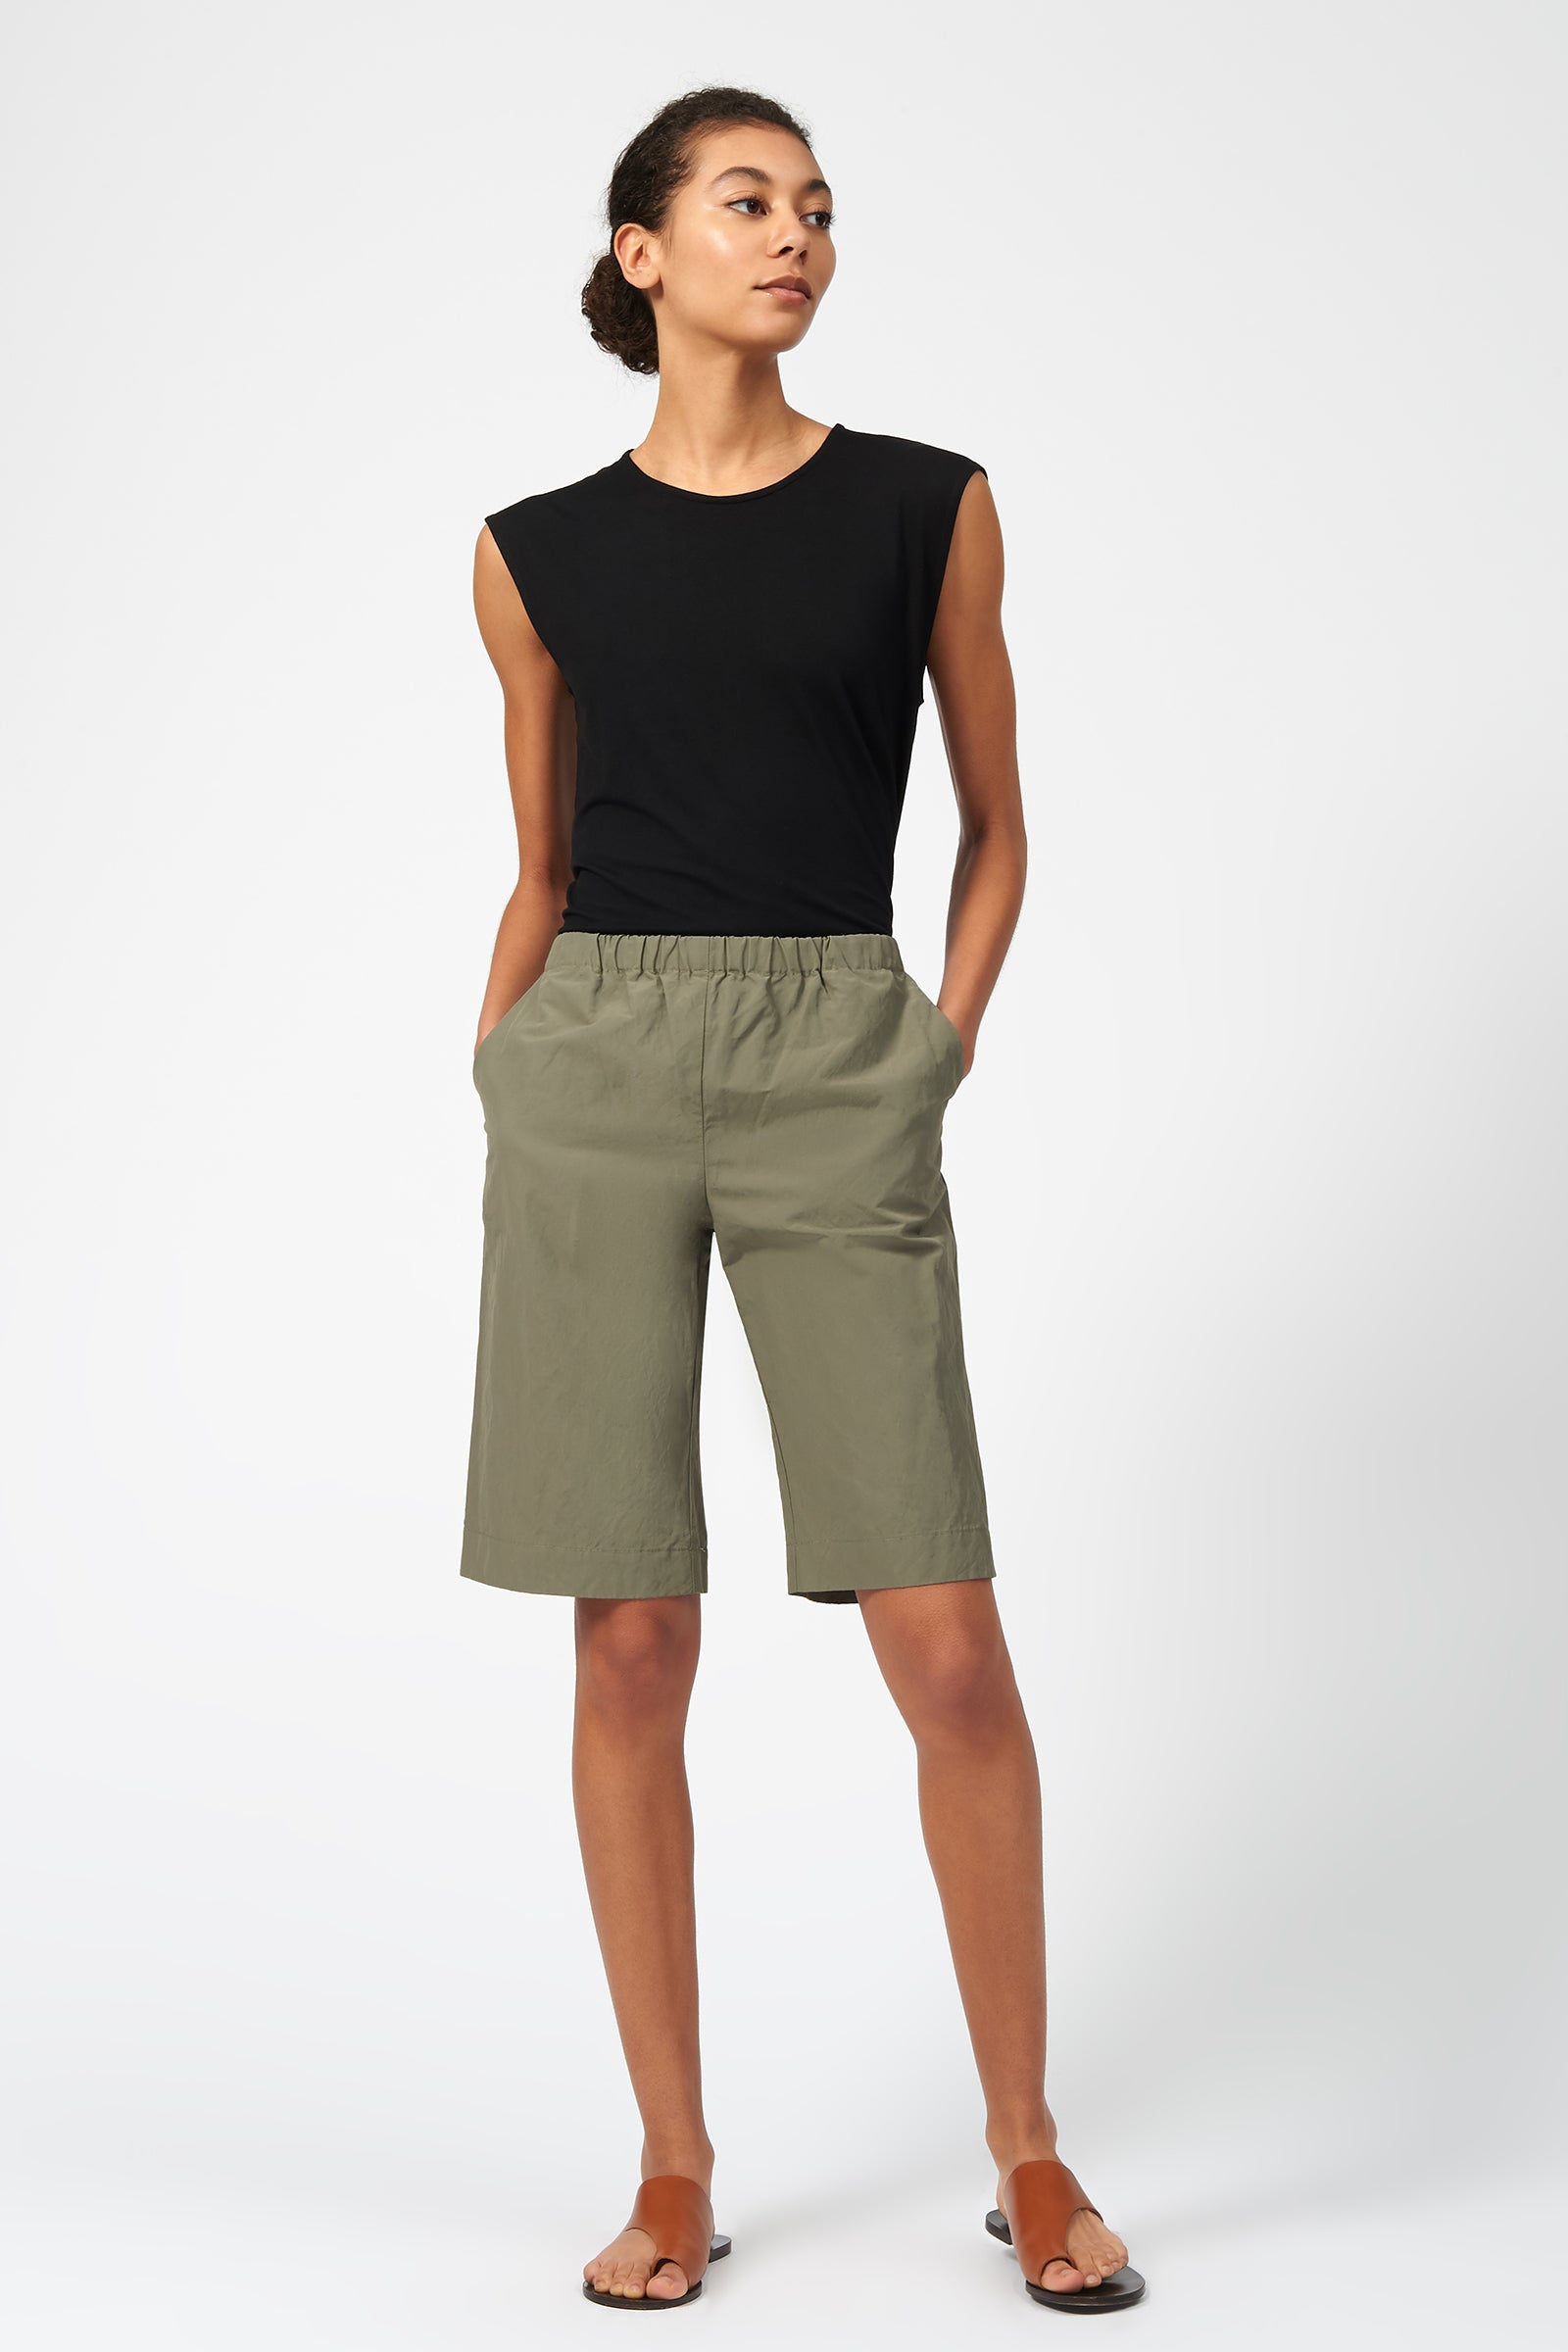 Kal Rieman Cotton Nylon Bermuda in Olive on Model Front View